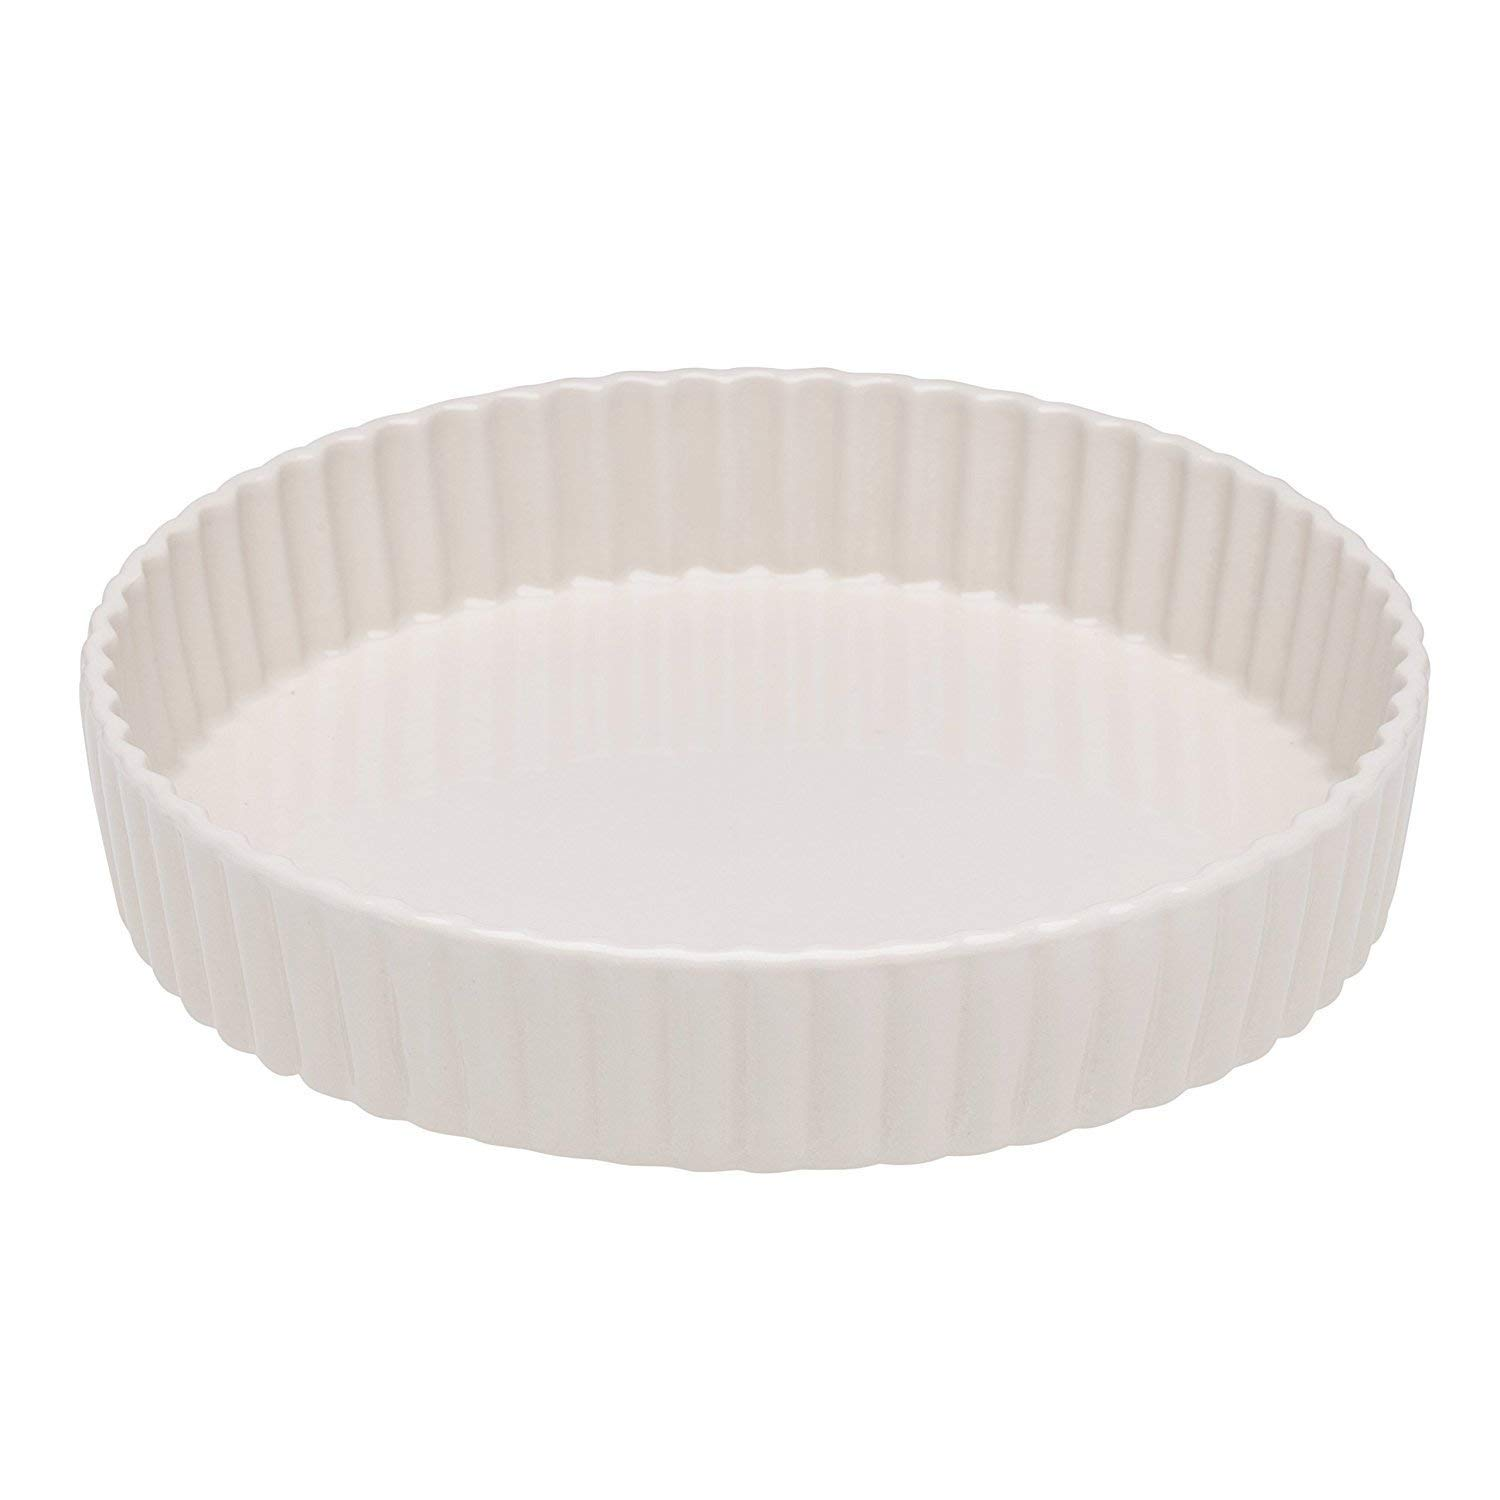 Wade Milton Brook White Flan Quice Pie Dish Stoneware 23cm / 9'' | Made in UK | Oven, Freezer, Microwave Safe